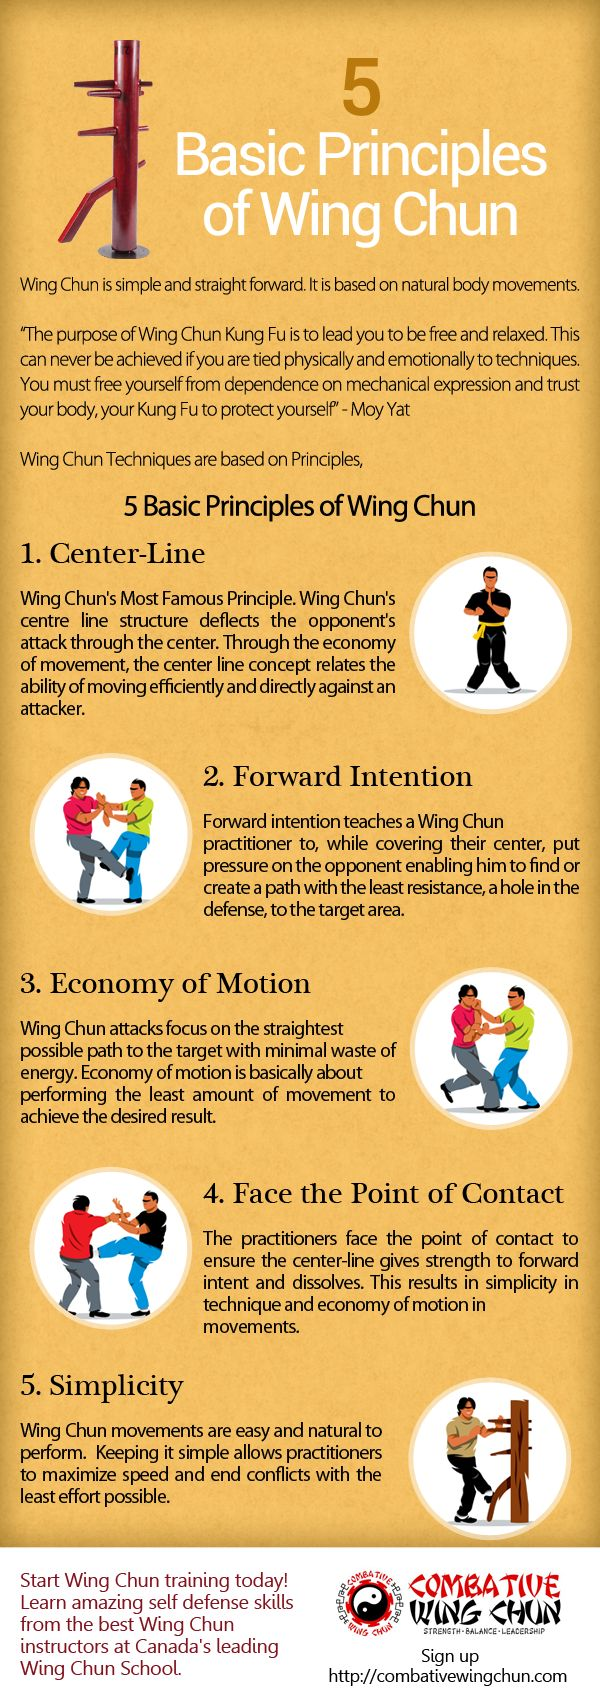 Wing Chun's Most Famous Principle. Wing Chun's centre line structure deflect the opponent's attack through the centre. Through the economy of moment, the centre line concept relates the ability of moving efficiently and directly against an attacker.